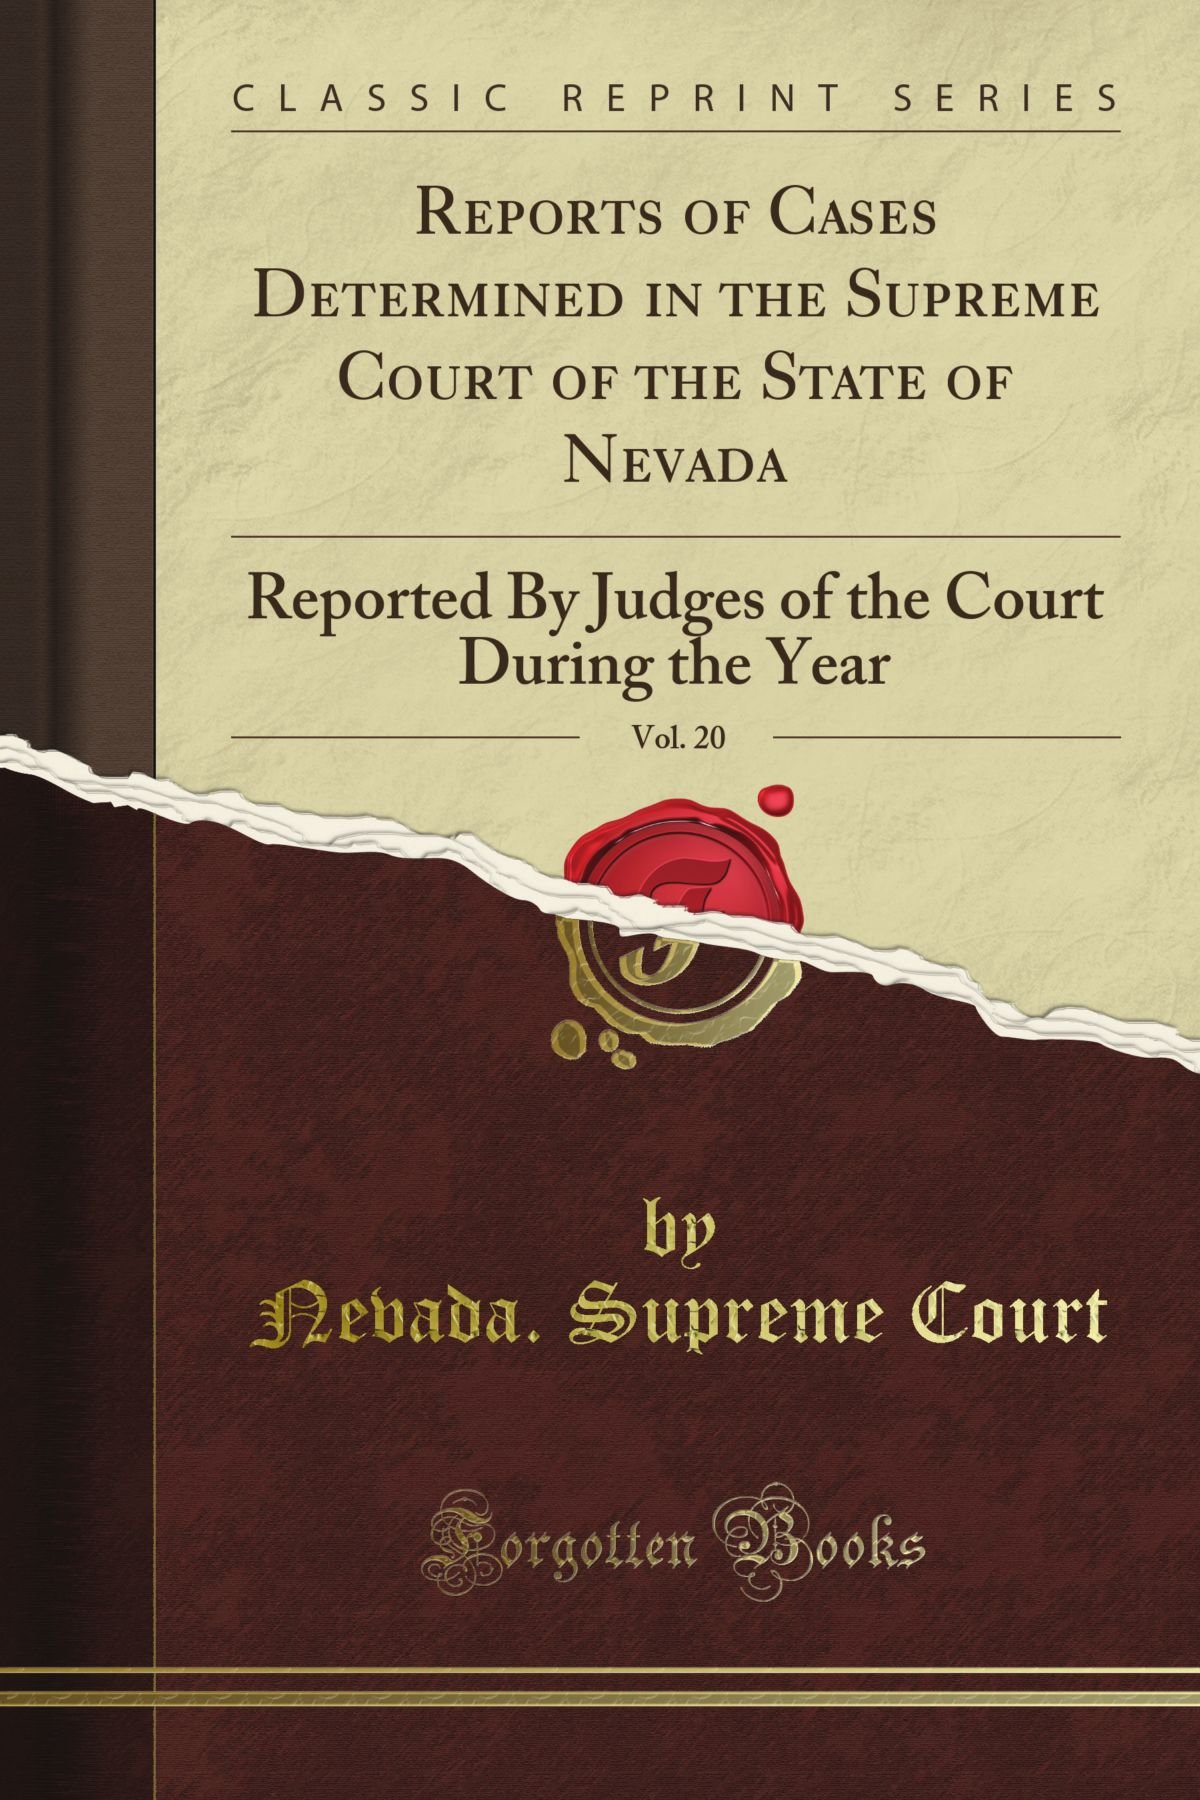 Download Reports of Cases Determined in the Supreme Court of the State of Nevada: Reported By Judges of the Court During the Year, Vol. 20 (Classic Reprint) ebook